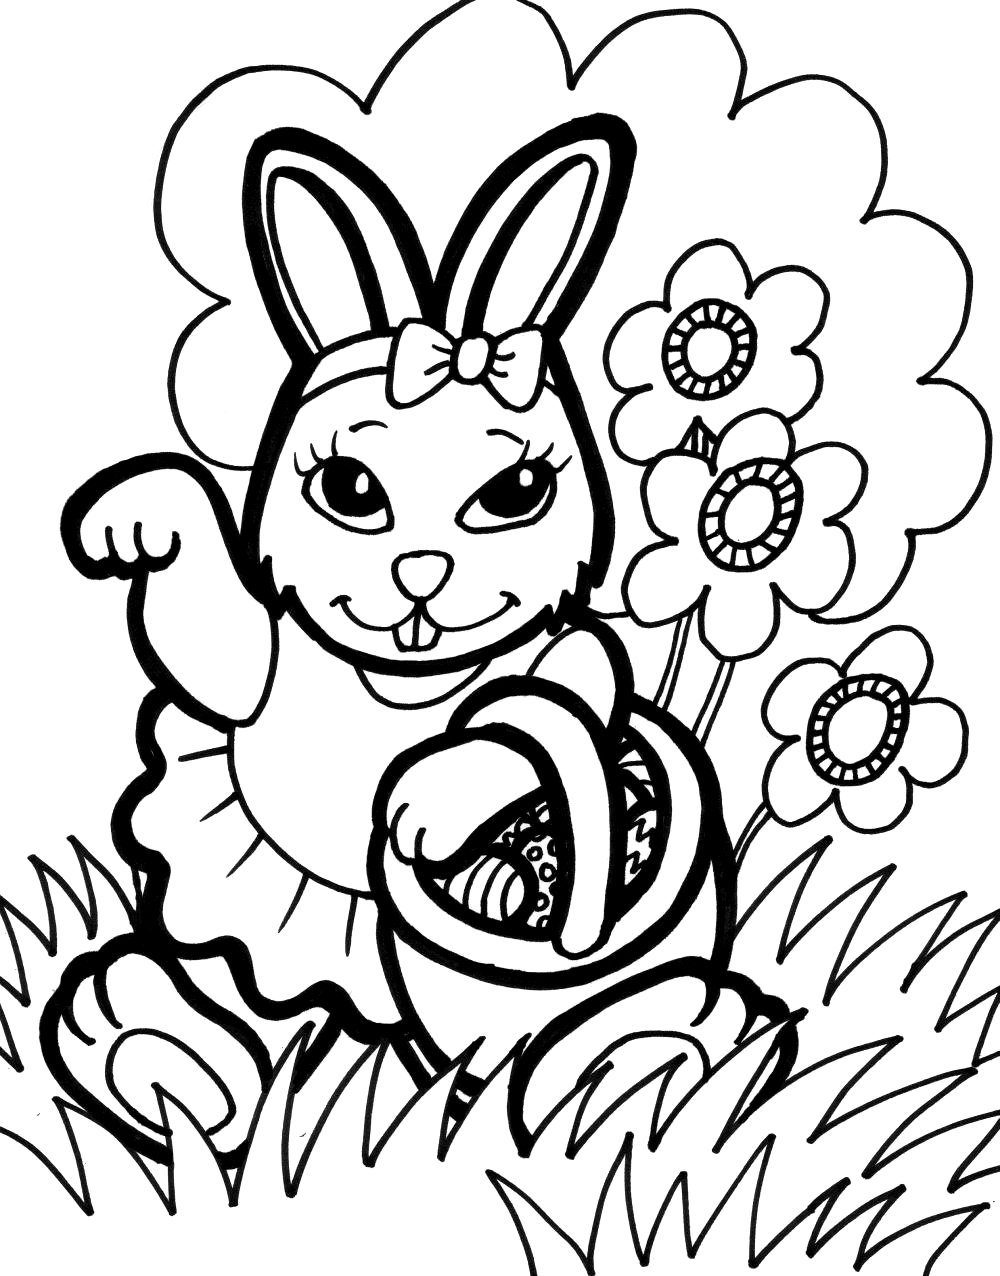 bunny picture to color bunny coloring pages best coloring pages for kids color to picture bunny